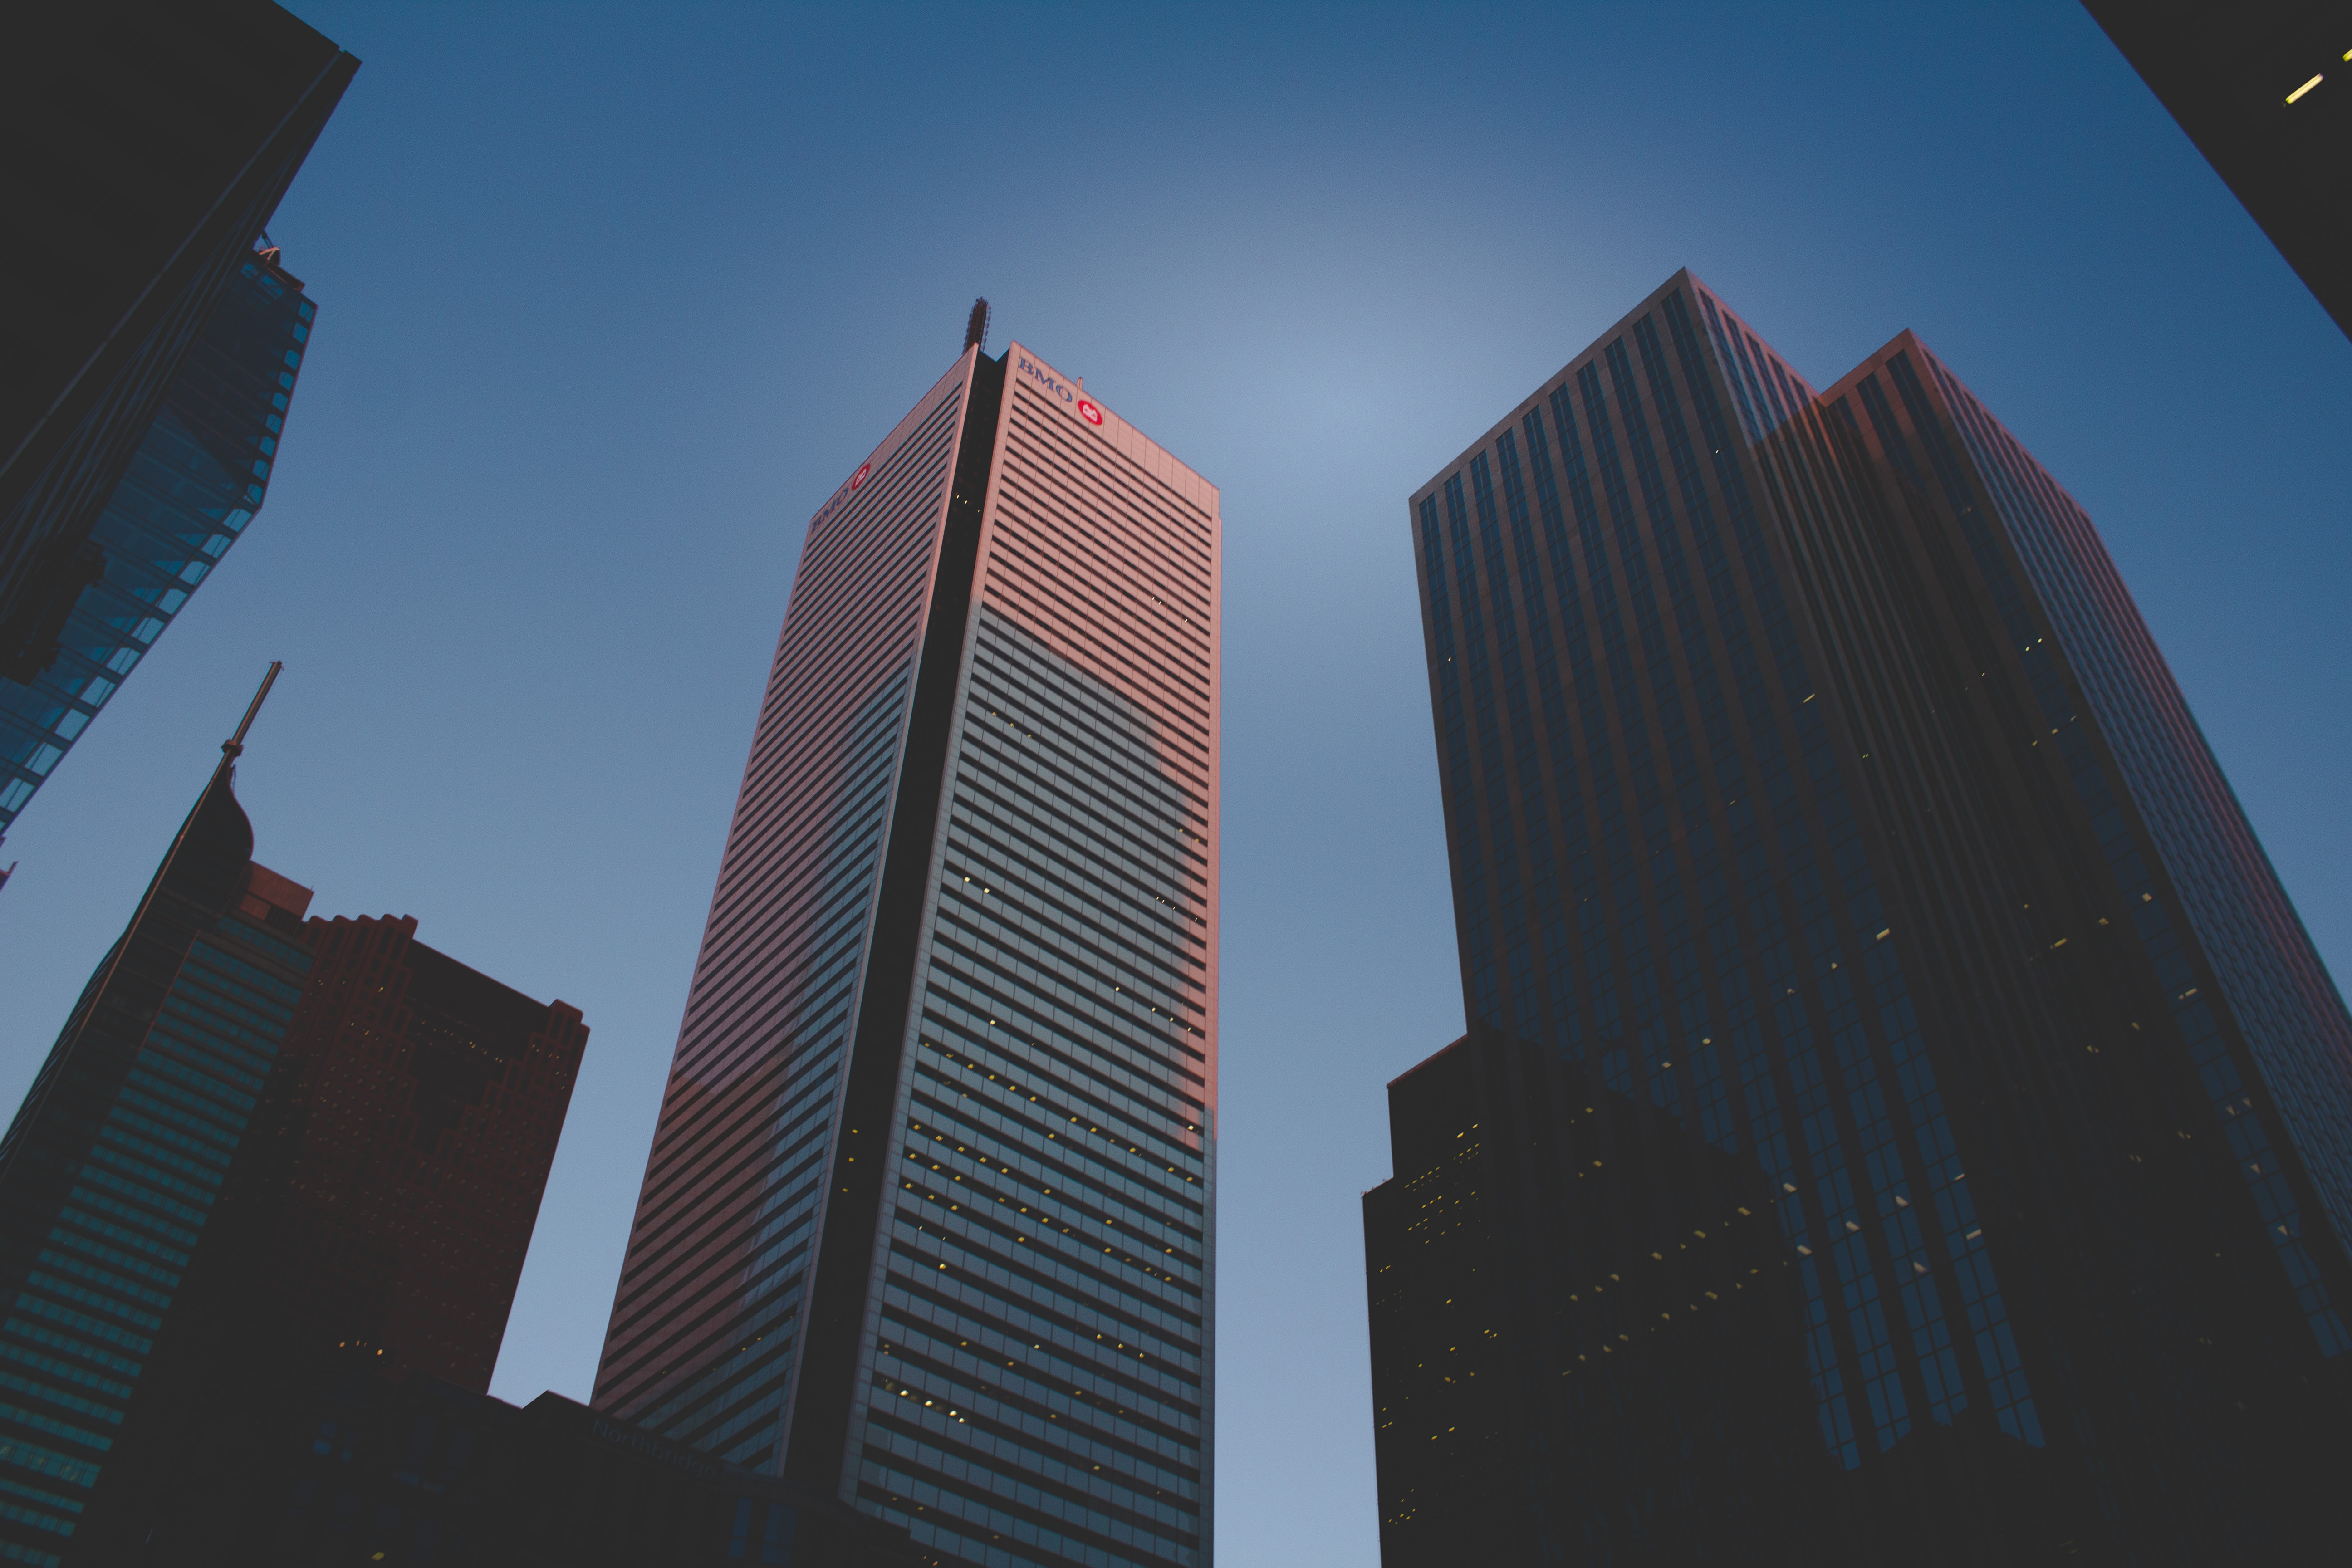 worm's eye view of high-rise city buildings during daytime